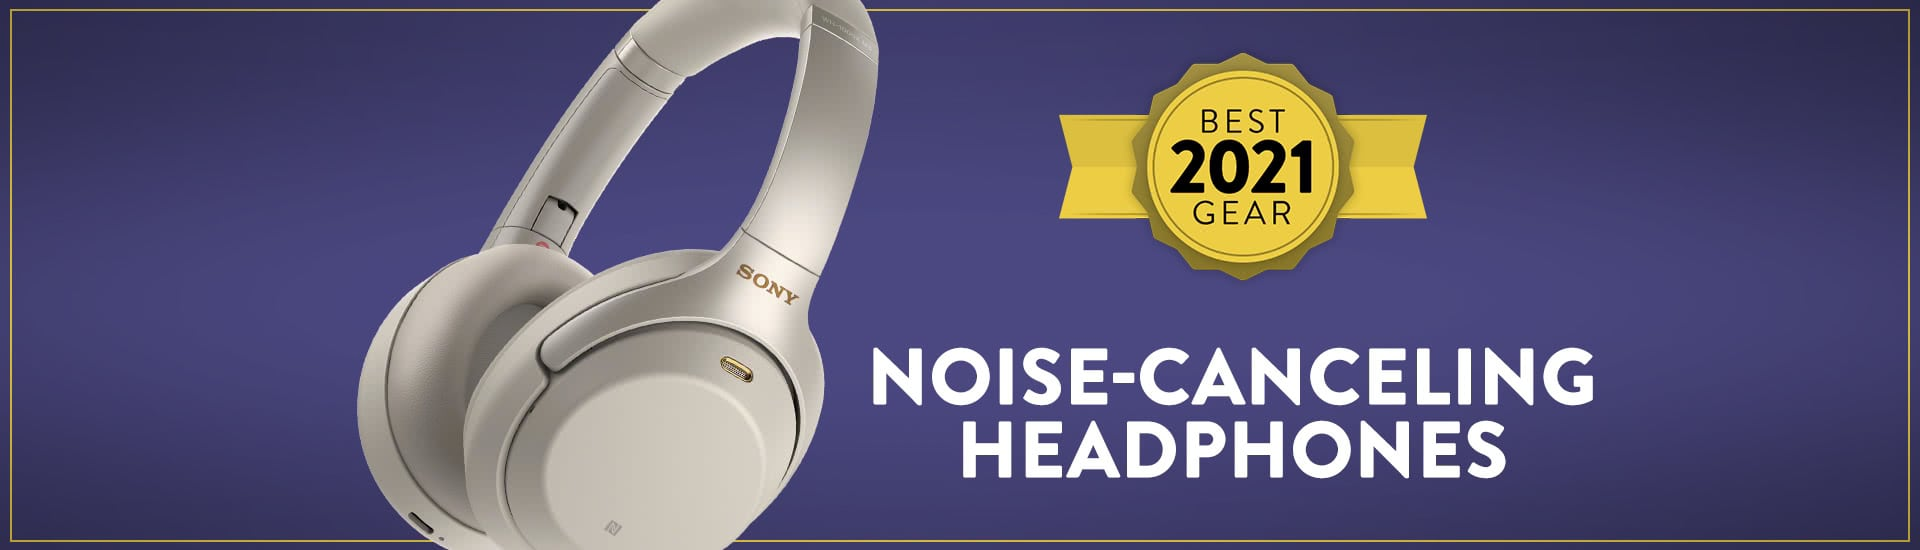 The Best Noise-Canceling Headphones of 2021